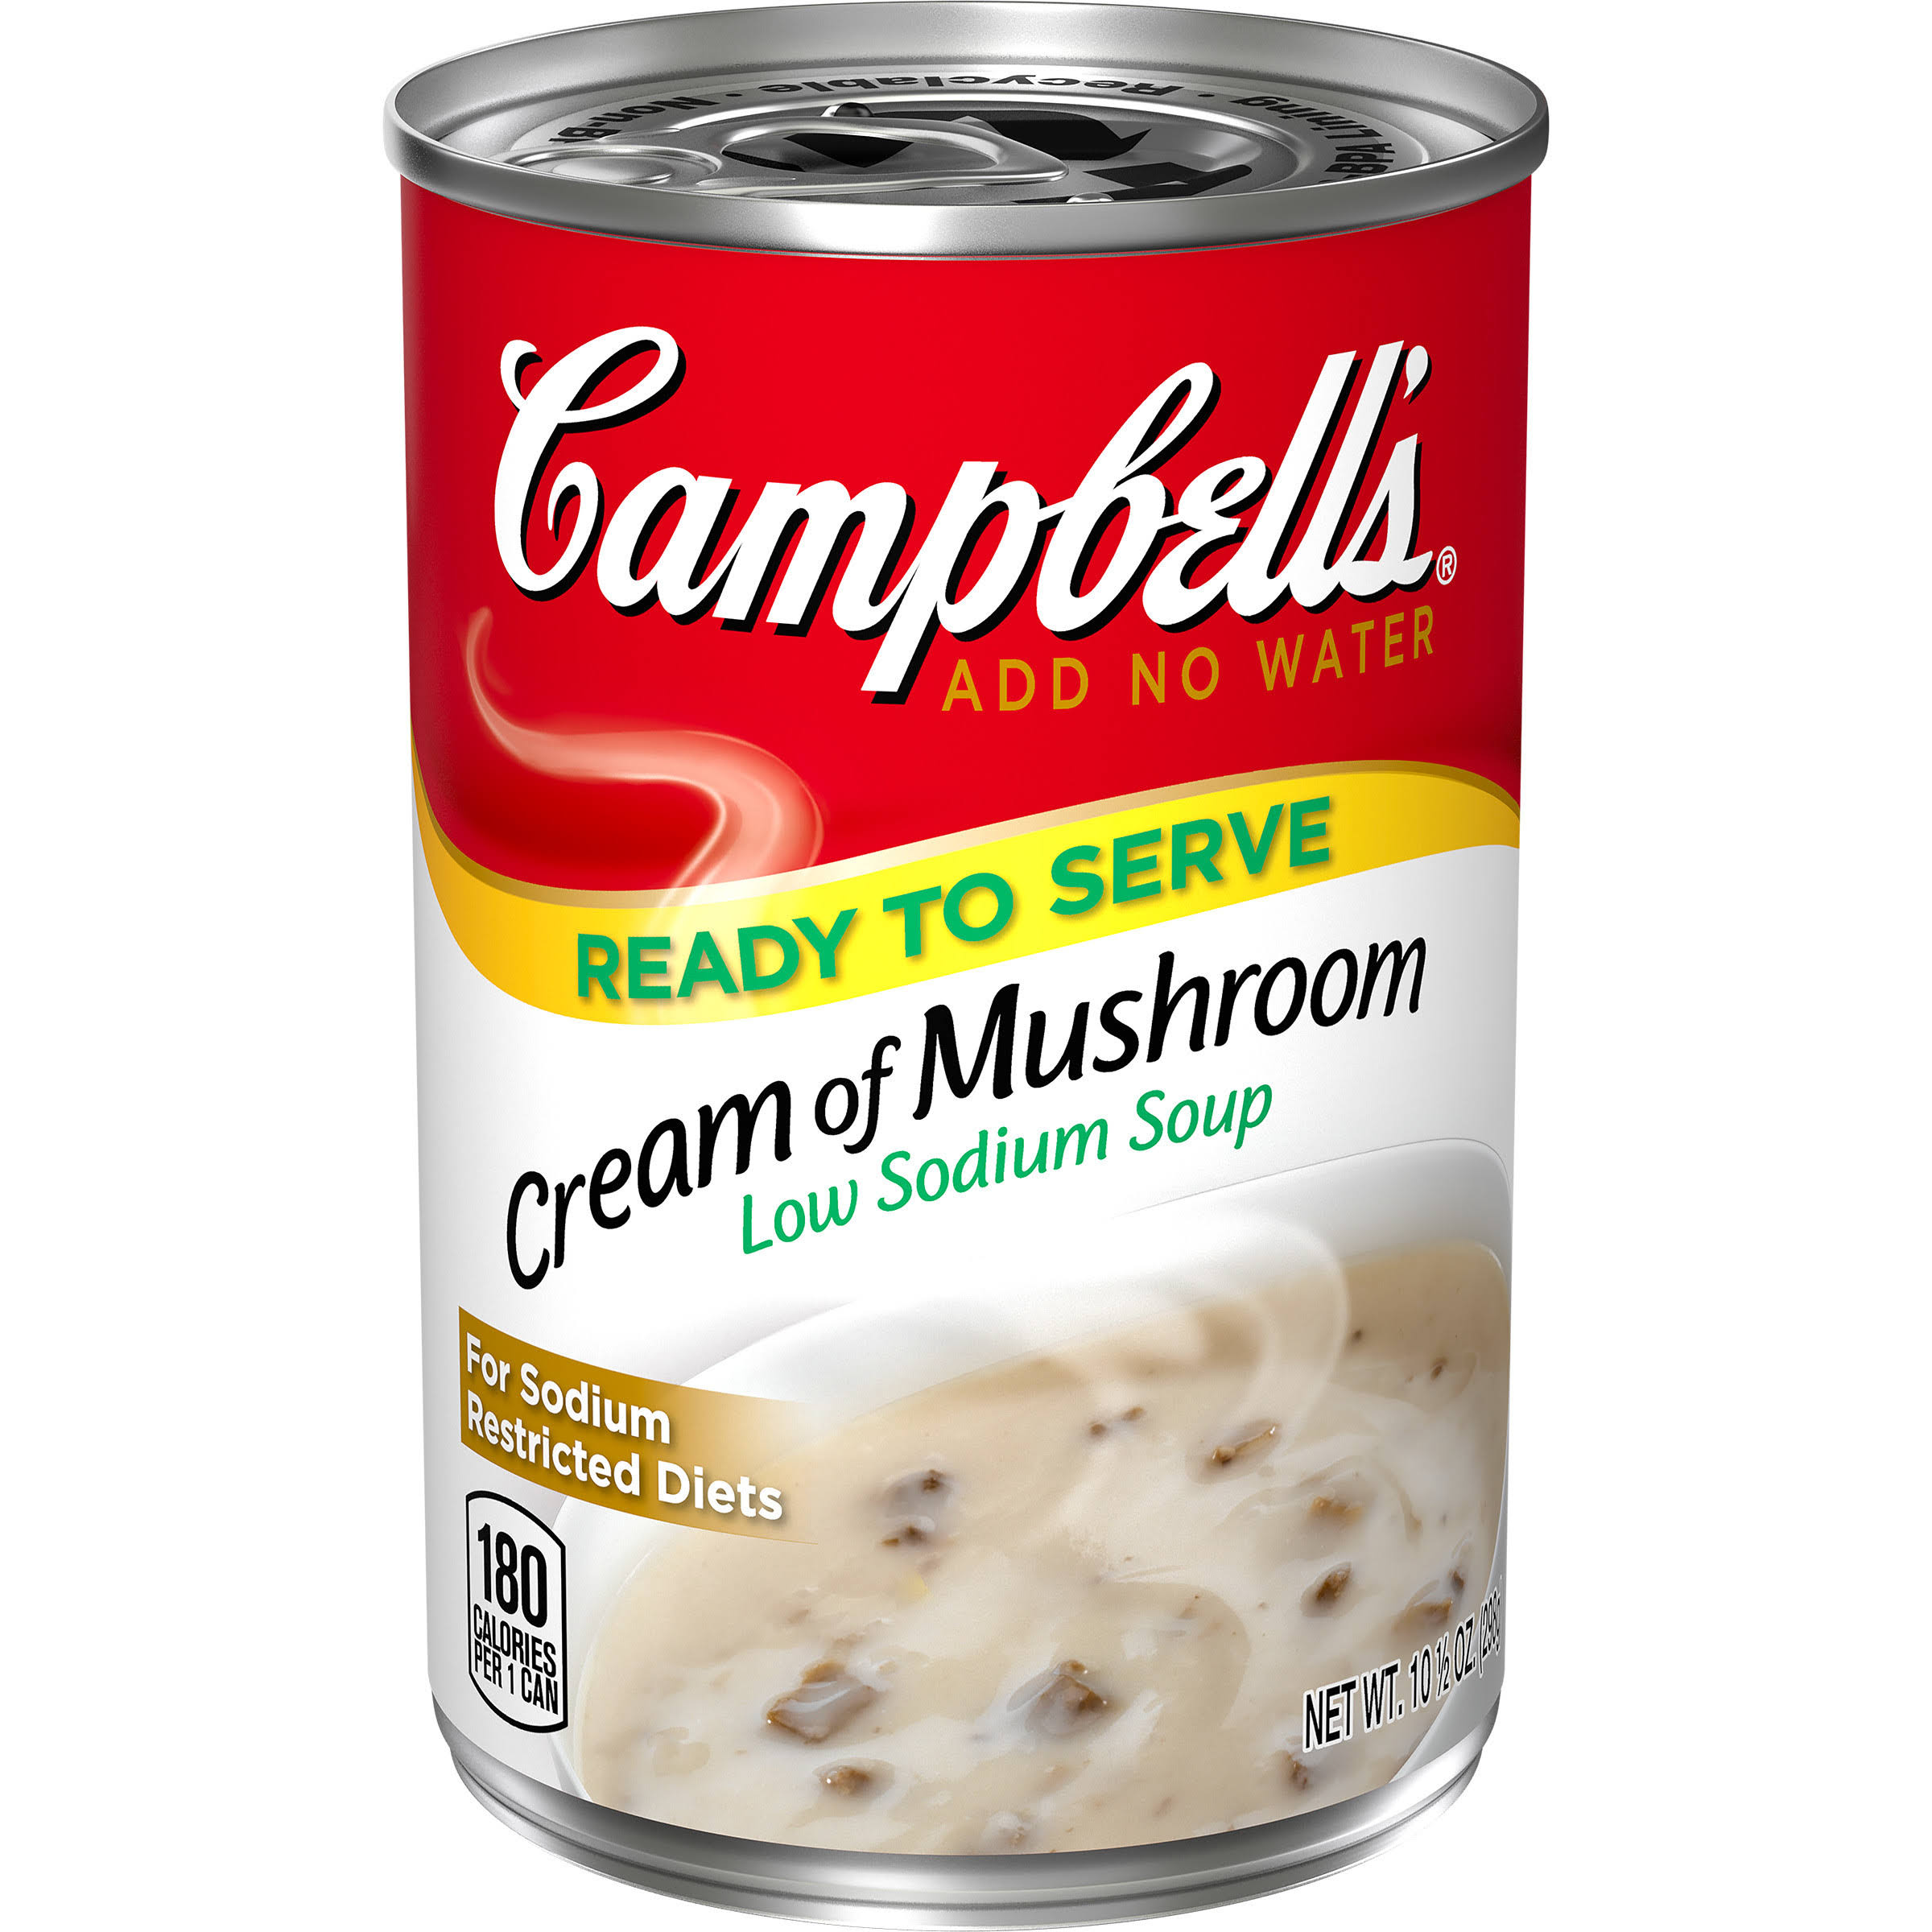 Campbell's Low Sodium Soup - Cream of Mushroom, 10.5oz